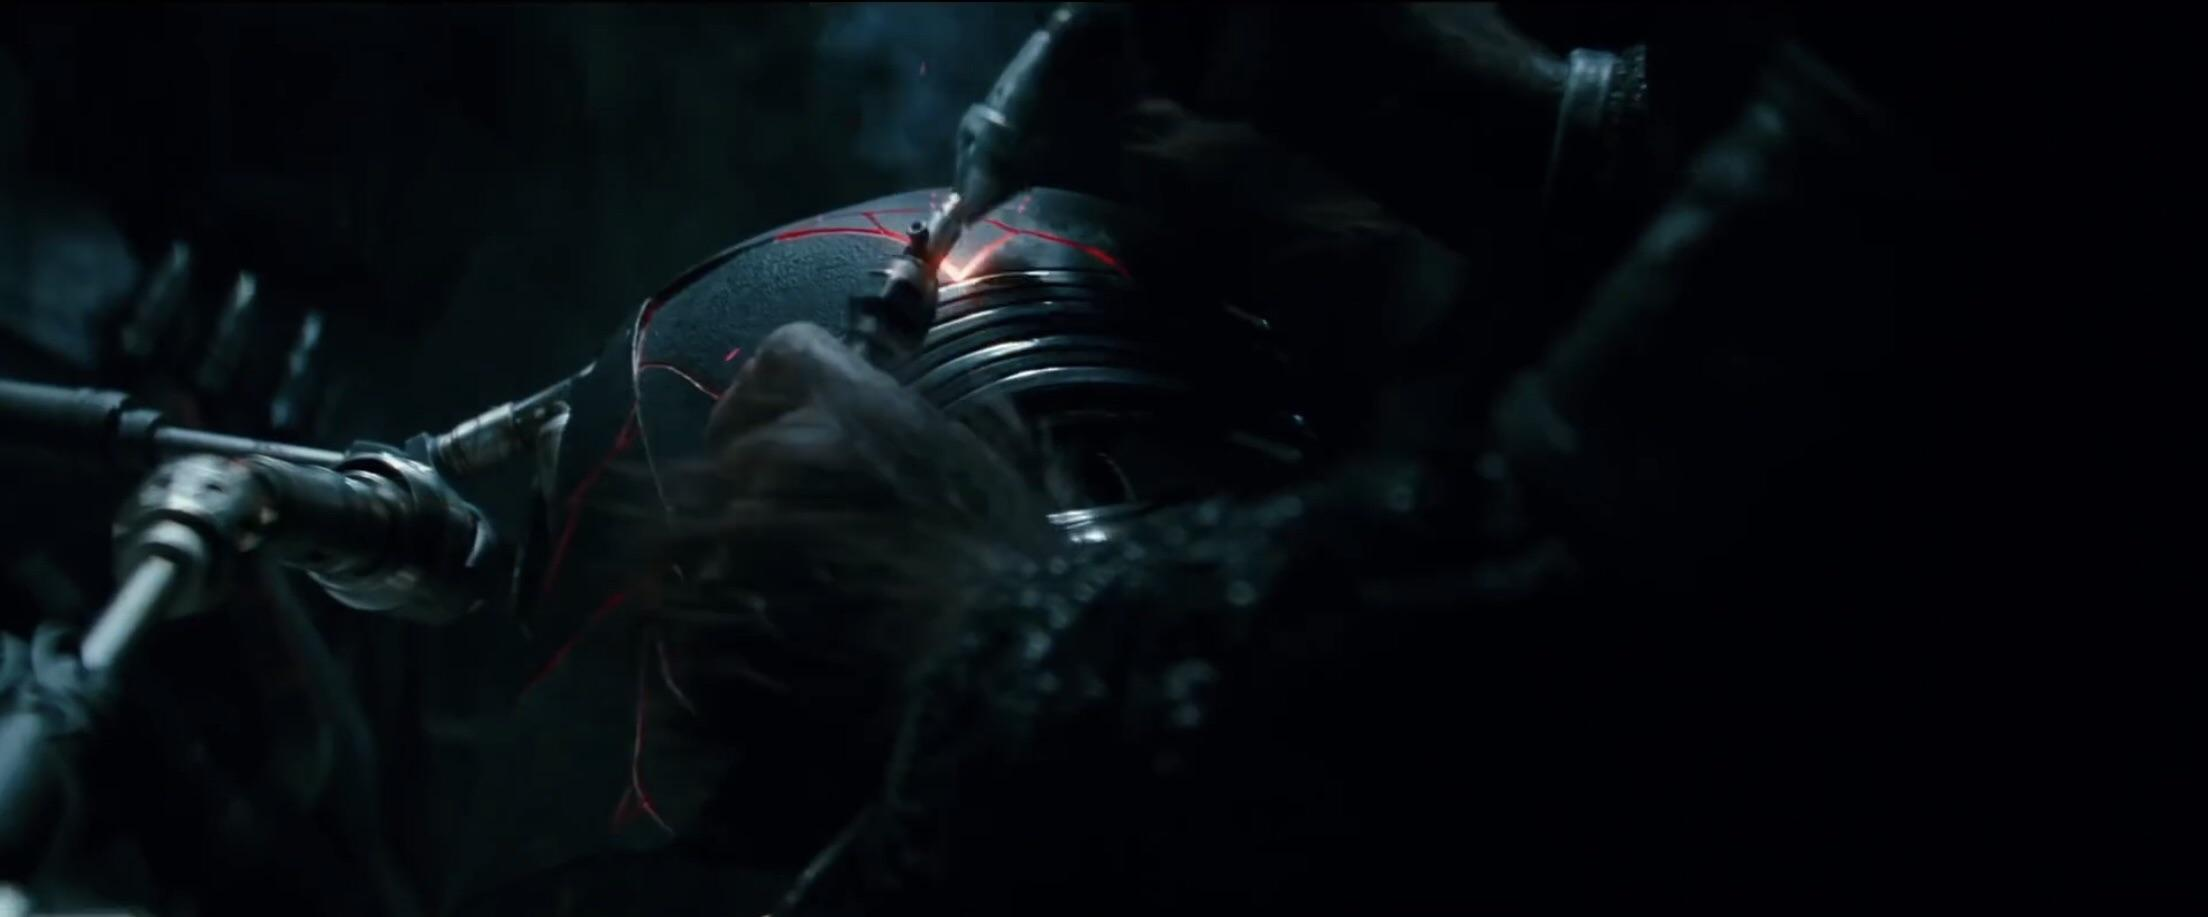 Kylo Rens Helmet Getting Repaired in star wars the rise of skywalker